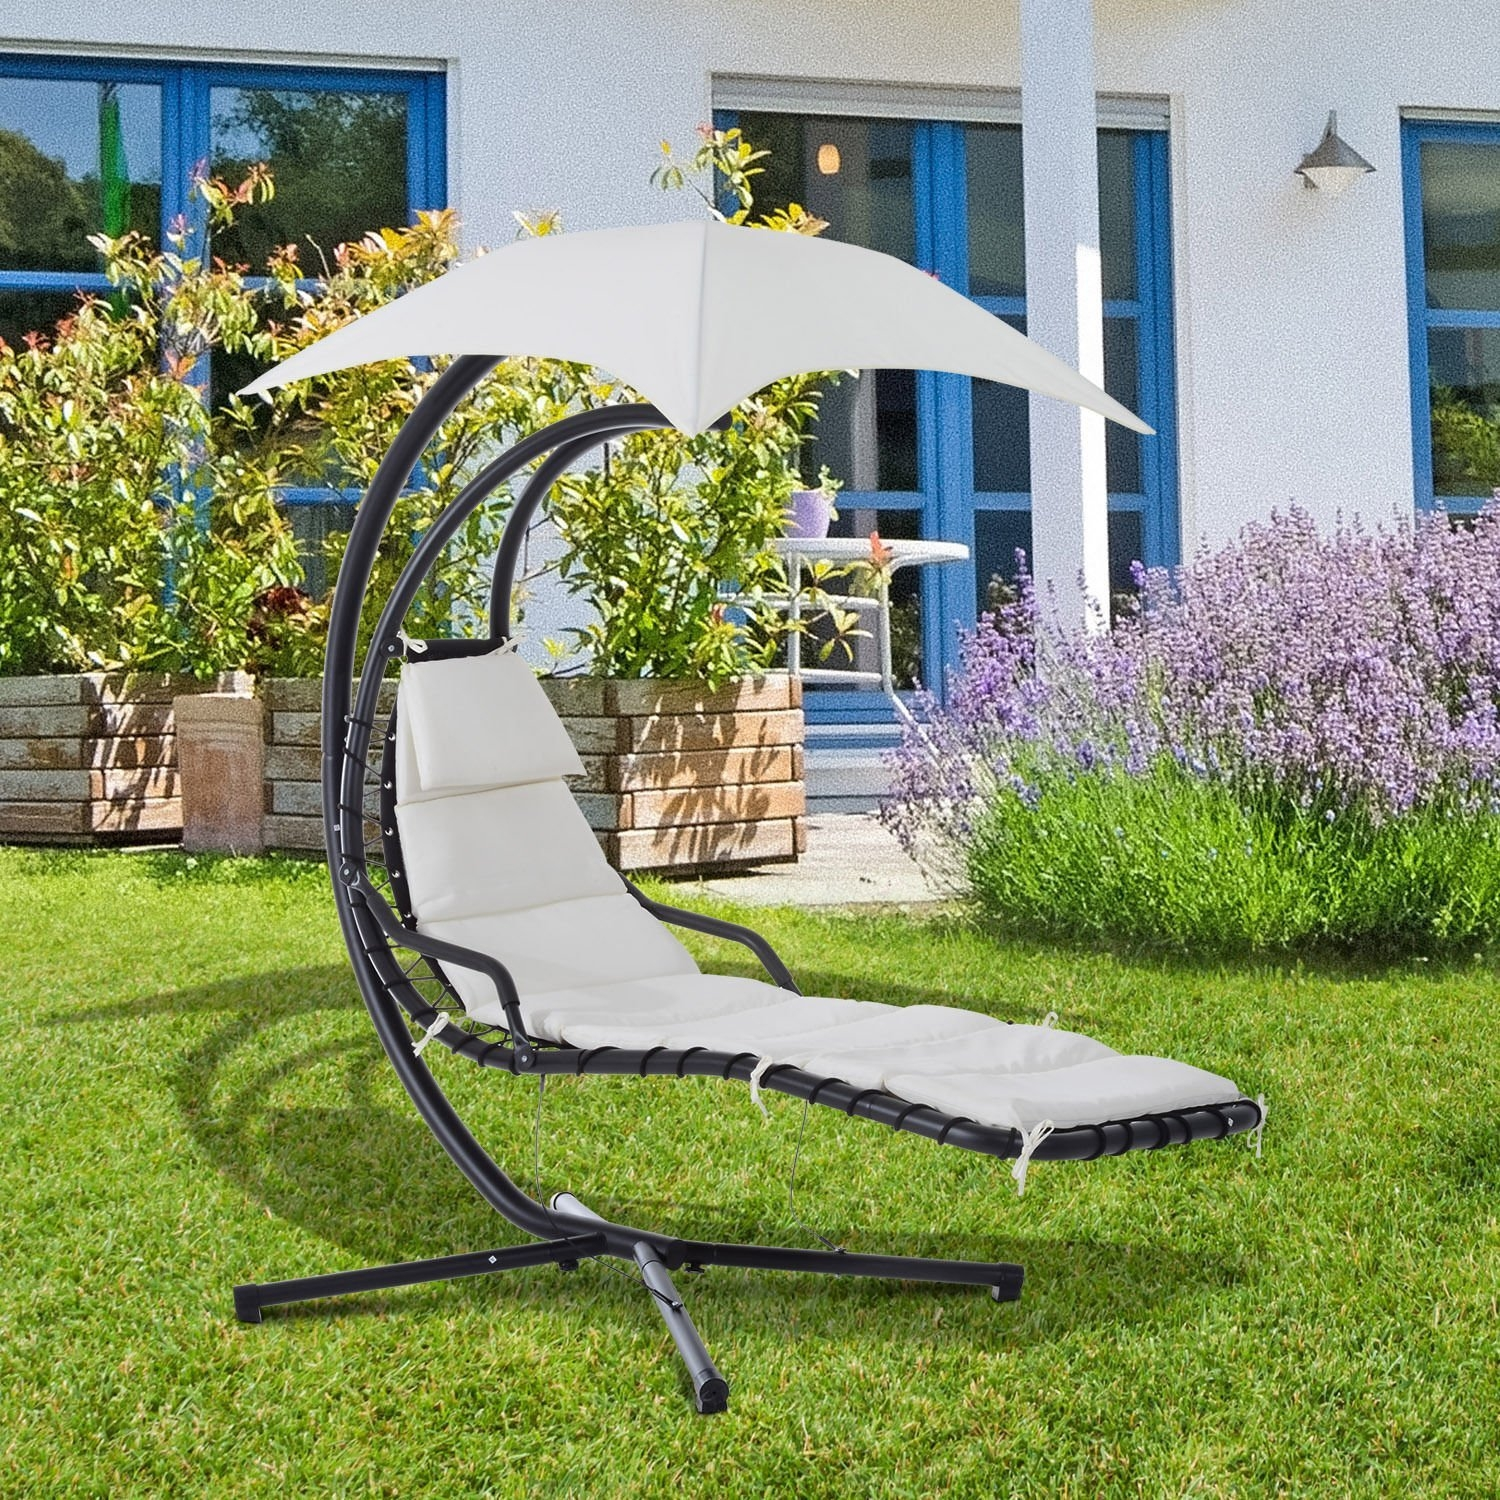 New MTN-G Hanging Chaise Lounger Swing Chair Arc Stand Ha...